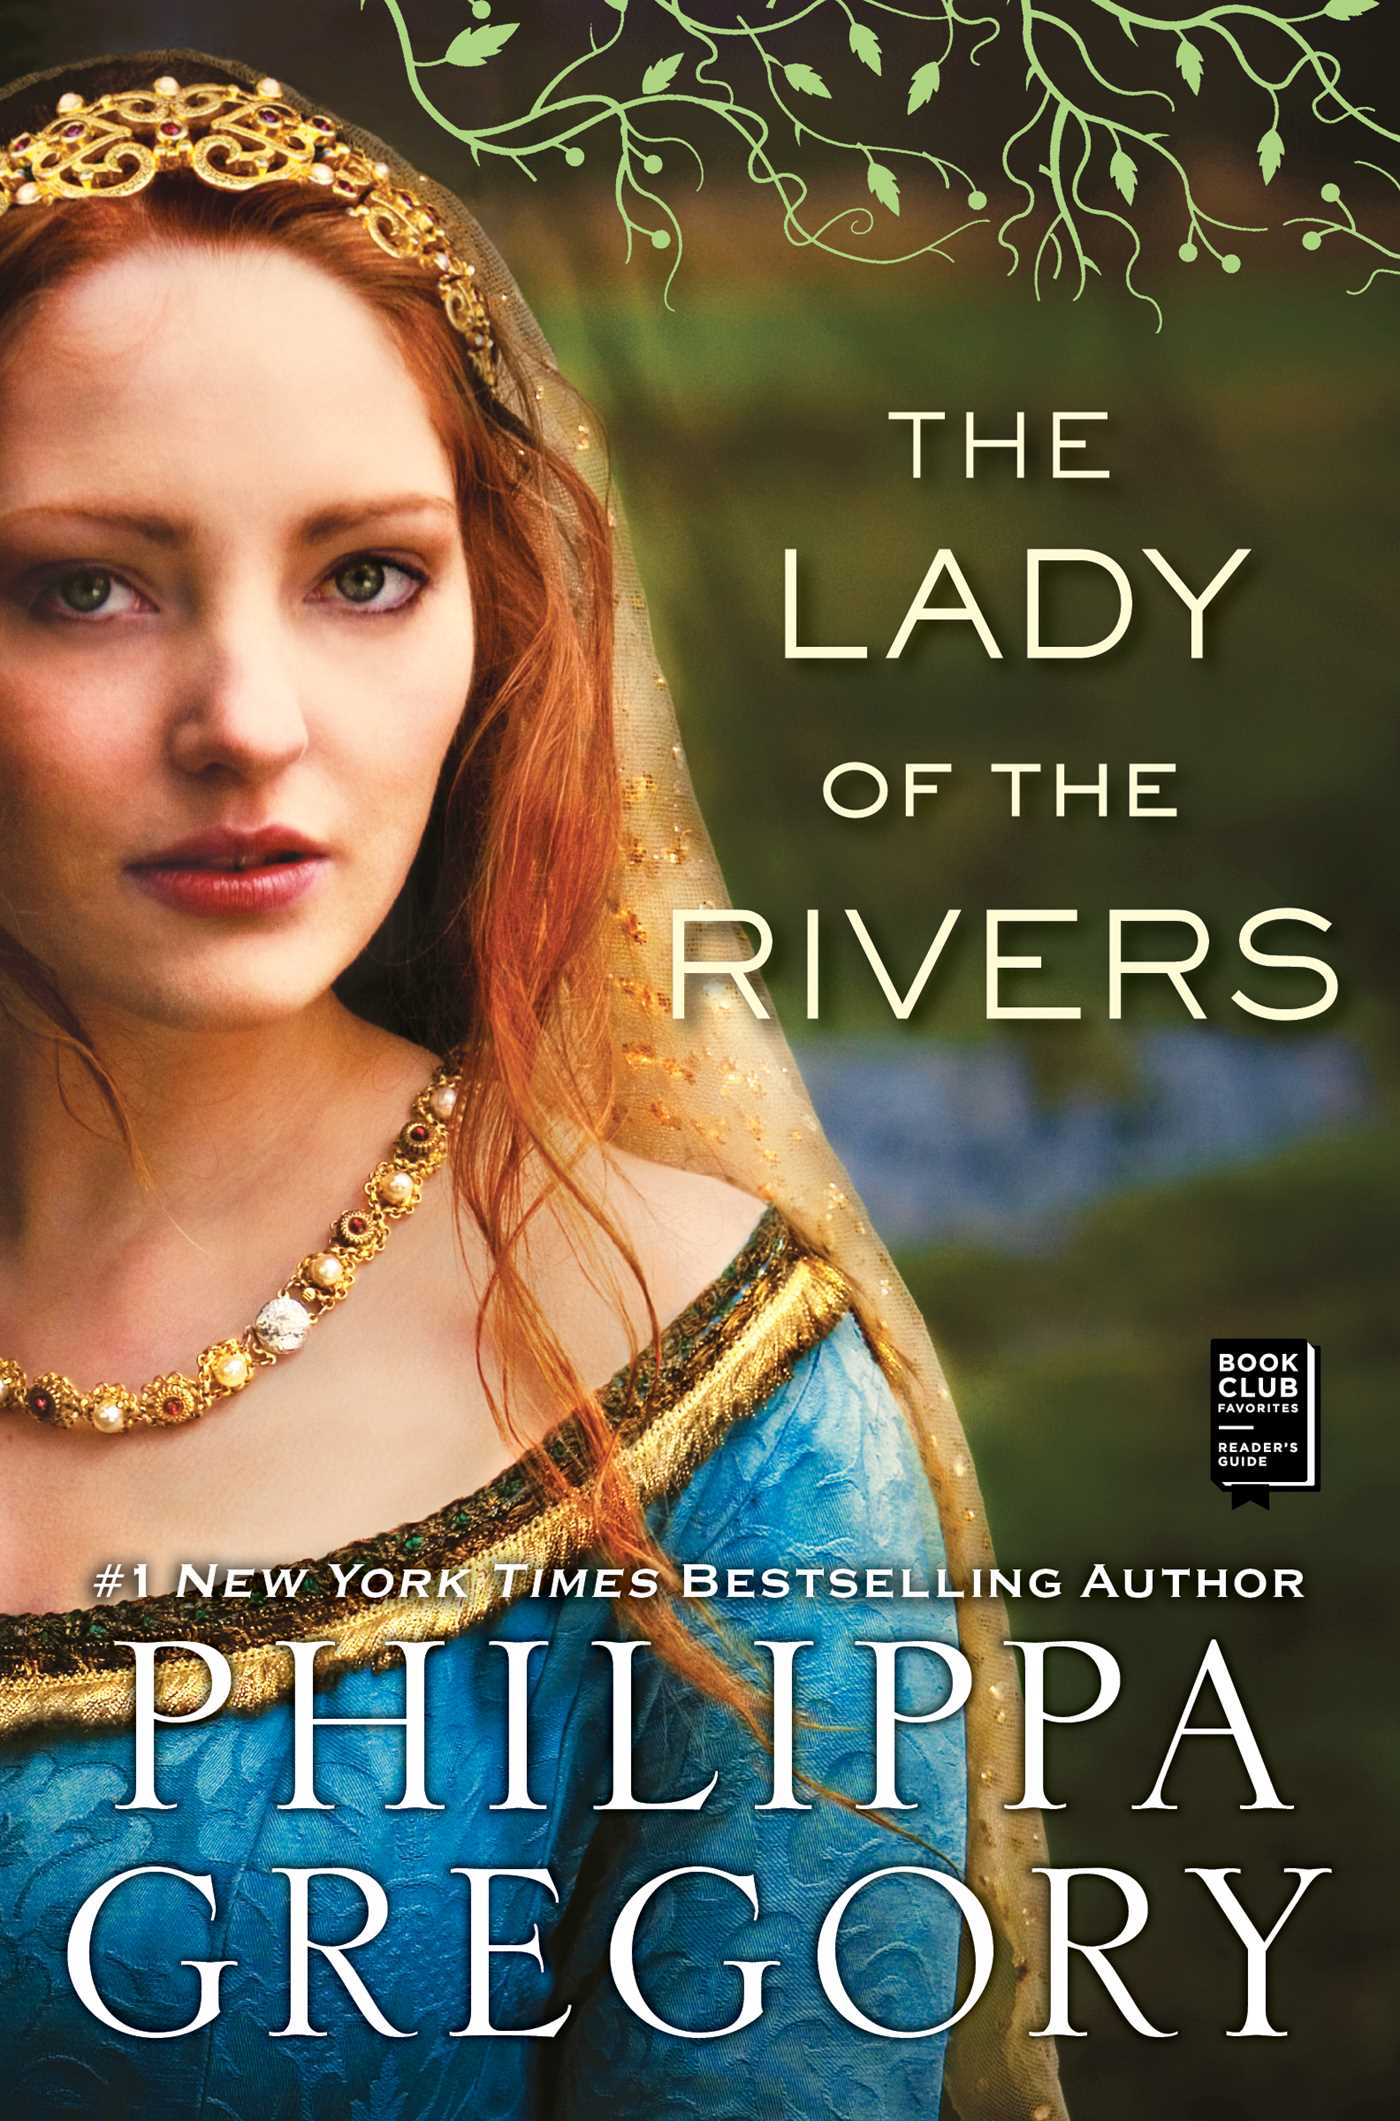 The lady of the rivers 9781416563716 hr